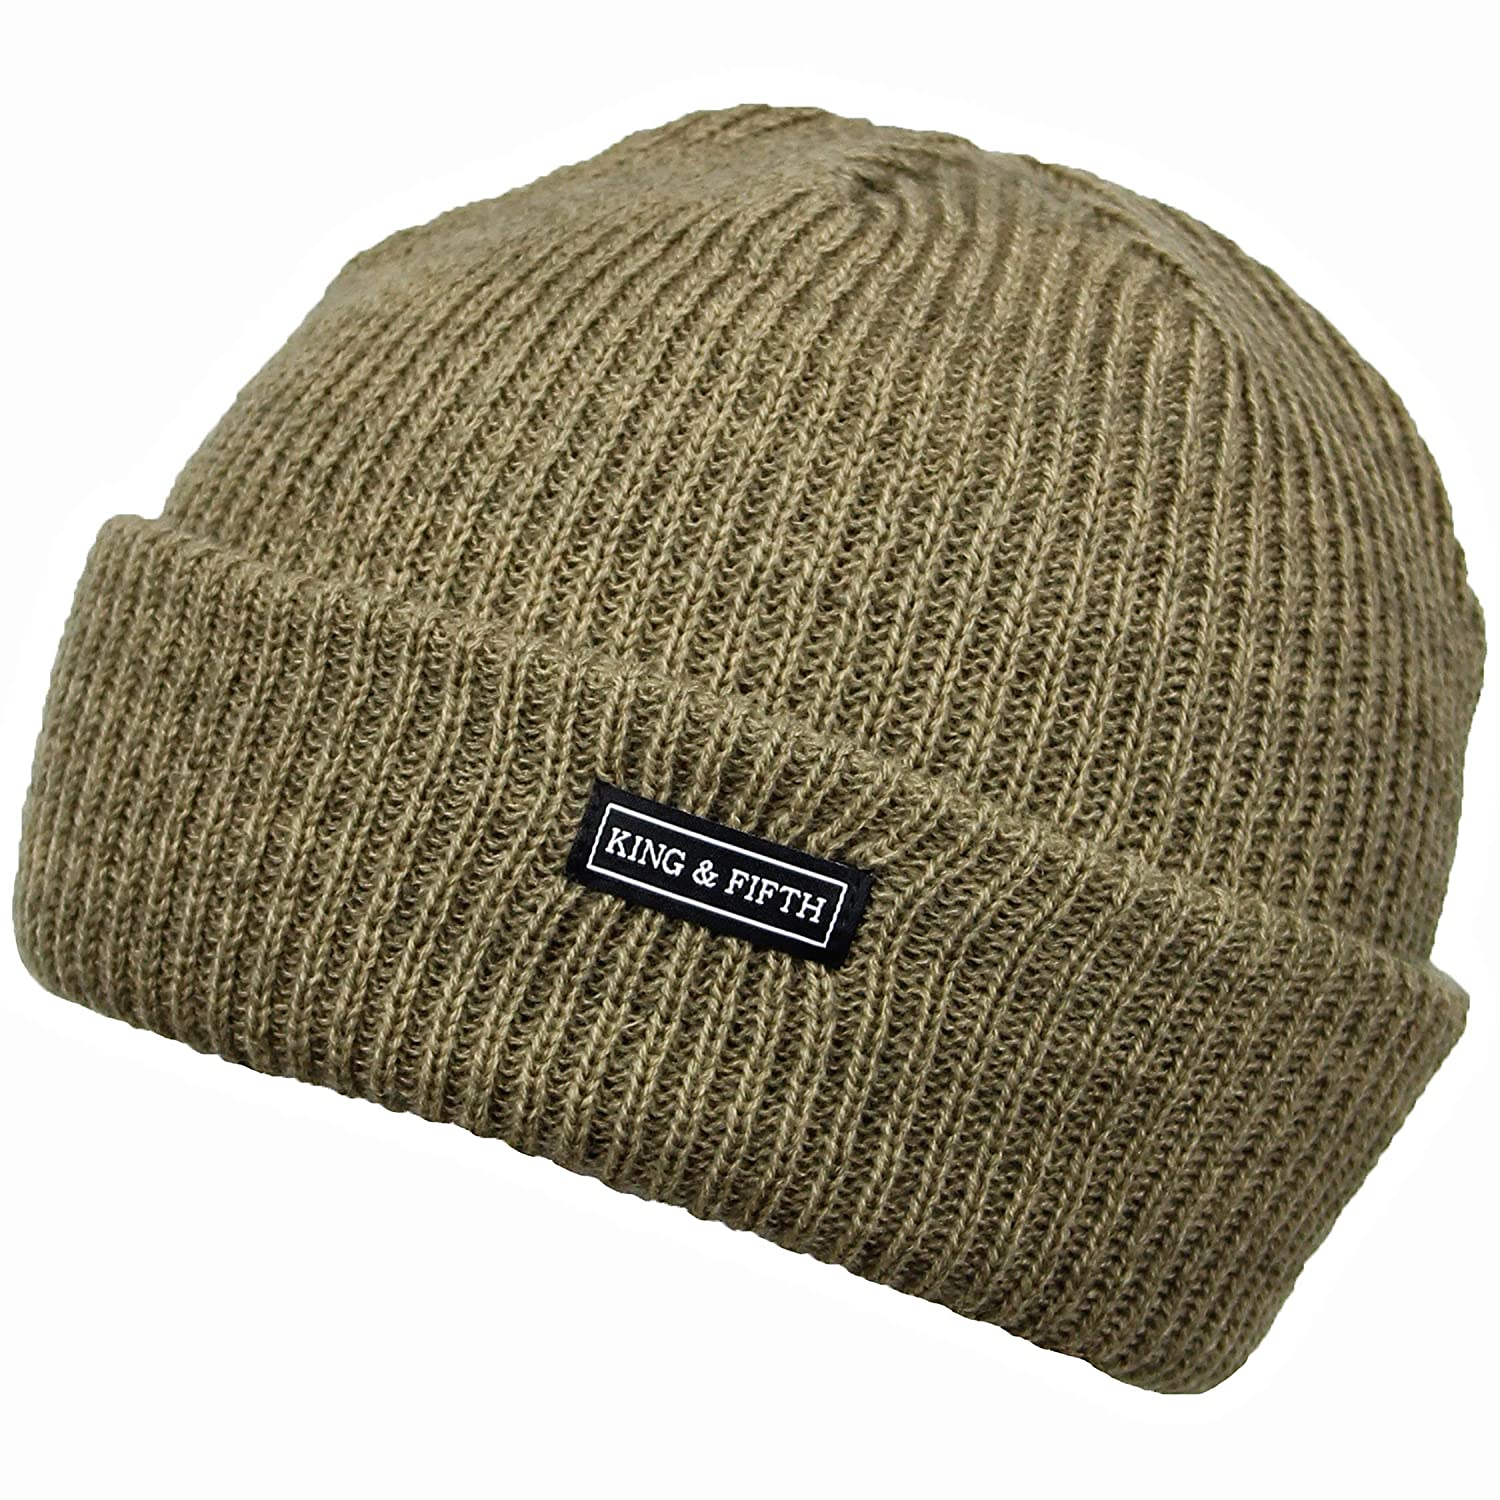 Beanie Premium Quality Beanie Hat Warm Winter Hat Slouchy Beanie for Men /& Women by King /& Fifth